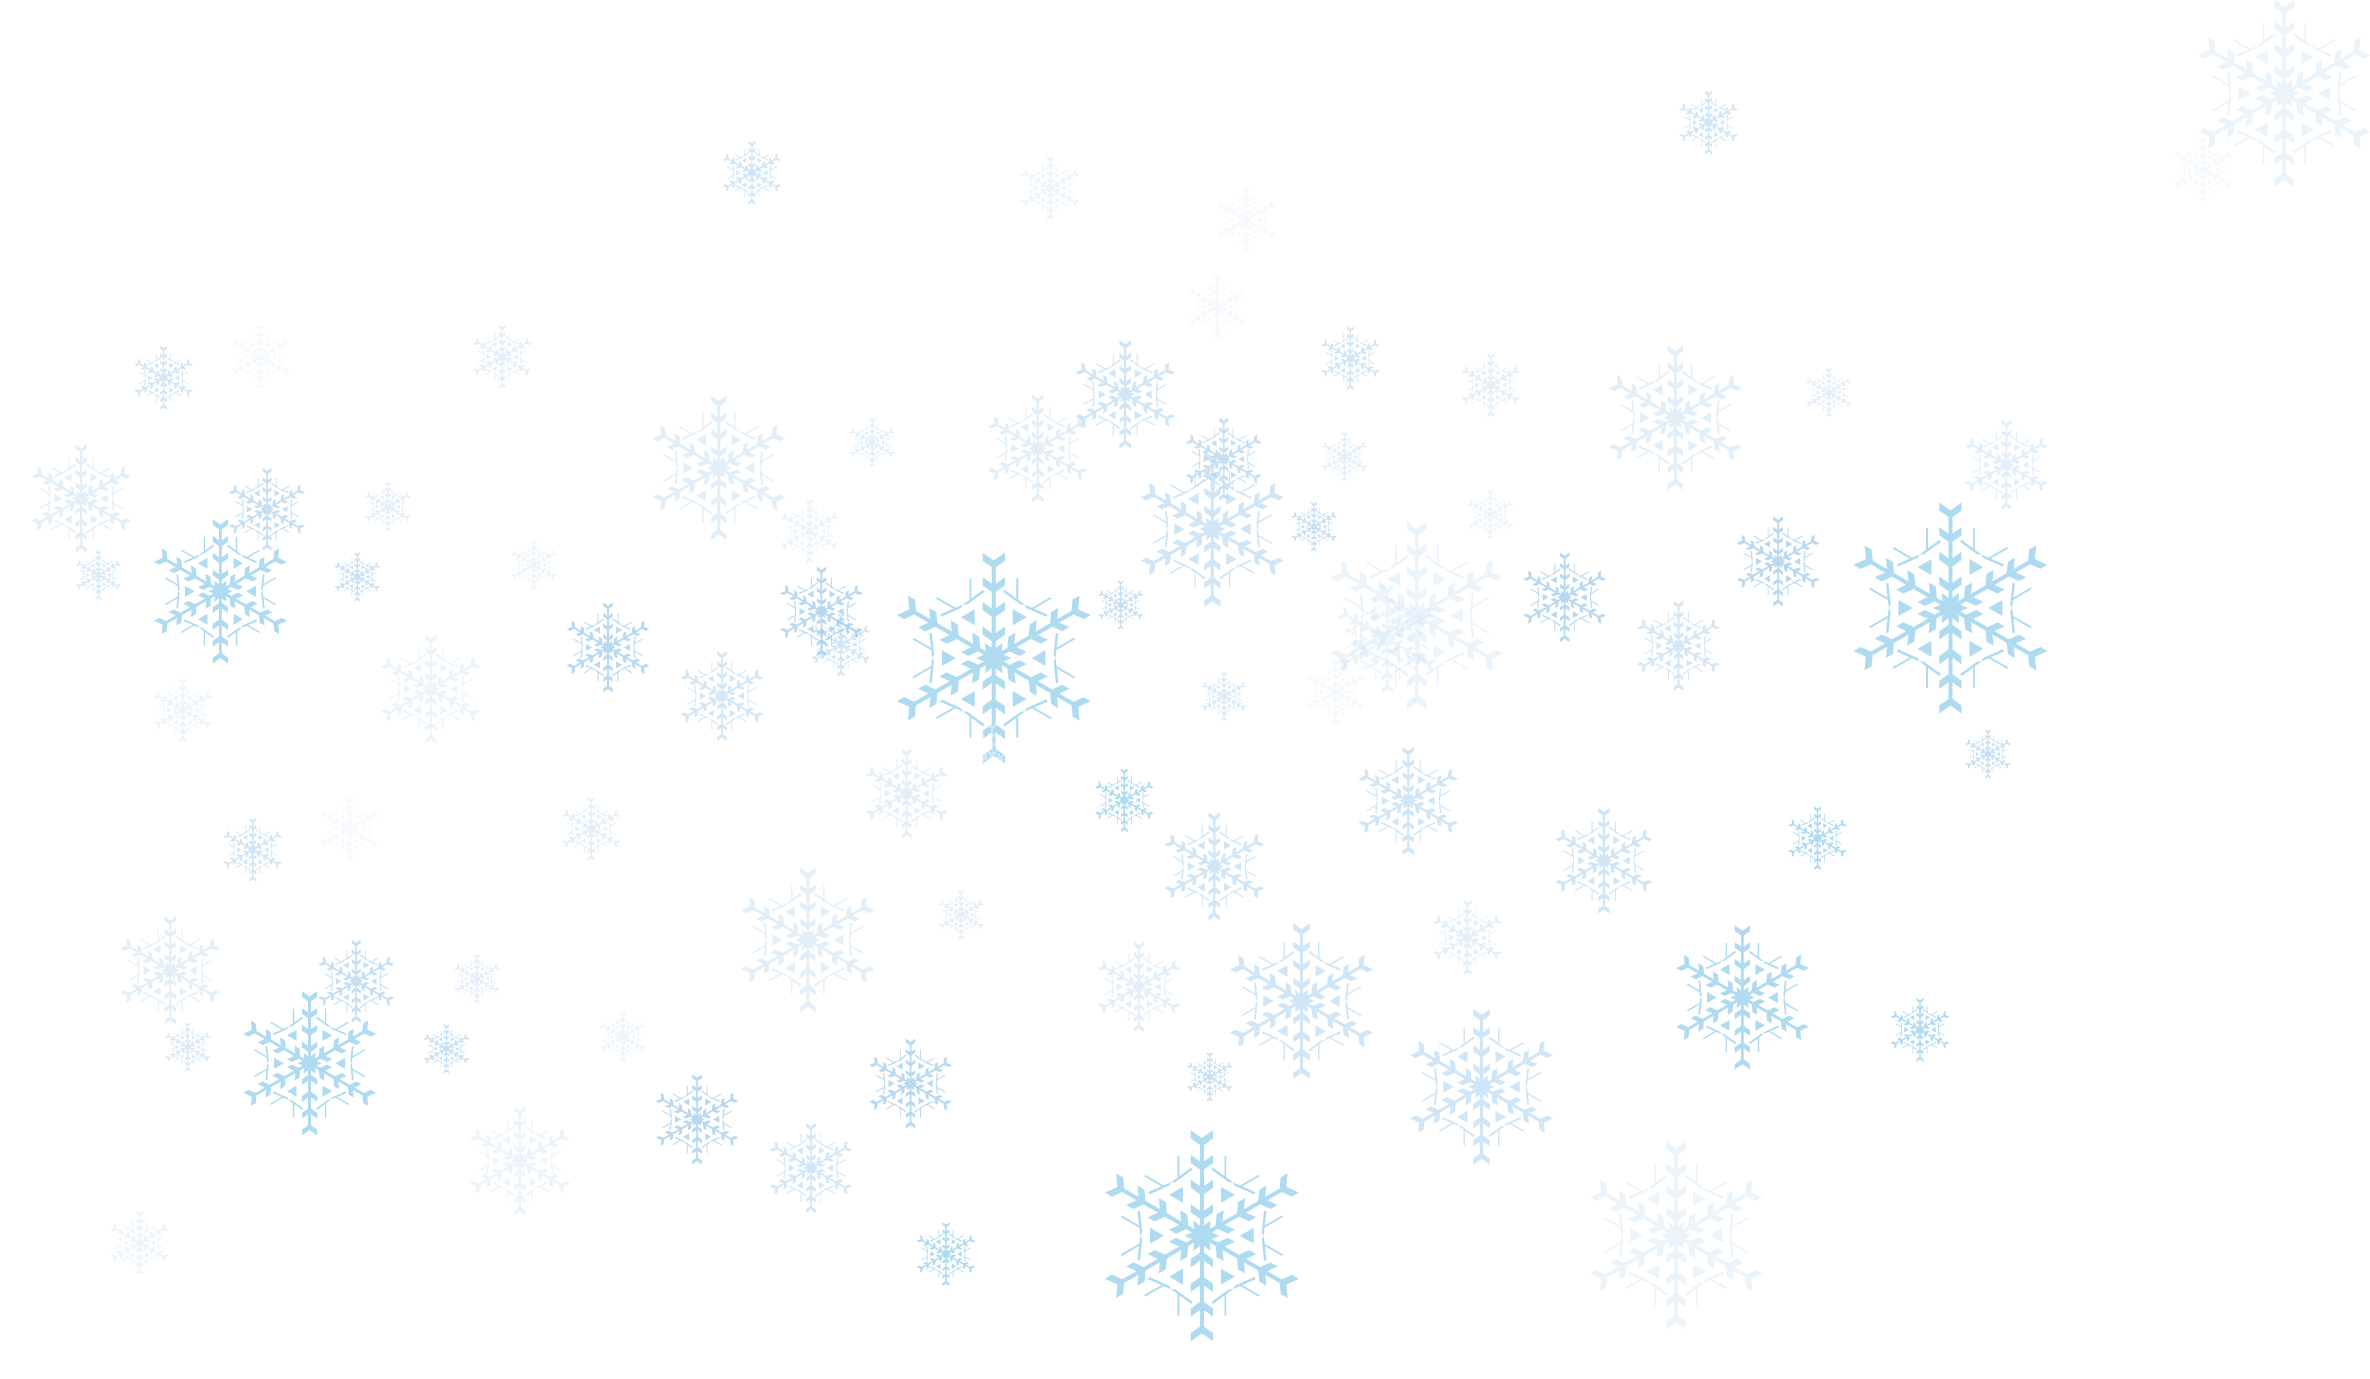 Solid snowflake clipart vector transparent stock 28+ Collection of Snowflake Clipart Background | High quality, free ... vector transparent stock